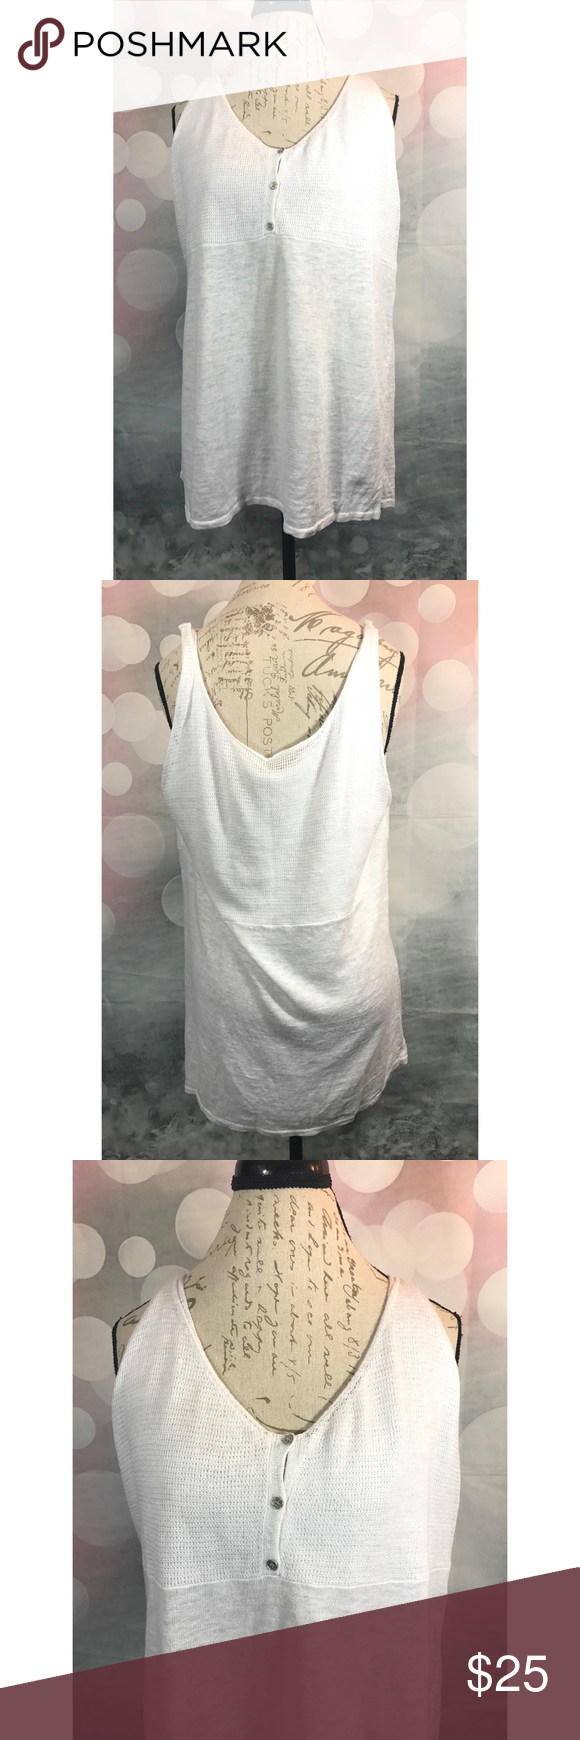 Eileen Fisher White Knit Tank Top XL An Eileen Fisher White Knit tank. A classic piece for any casual outfit! Size XL. In great preloved condition with only small fuzzies from normal wear and wash.   Additional Information: Made in: China Material: 100% linen Eileen Fisher Tops Tank Tops